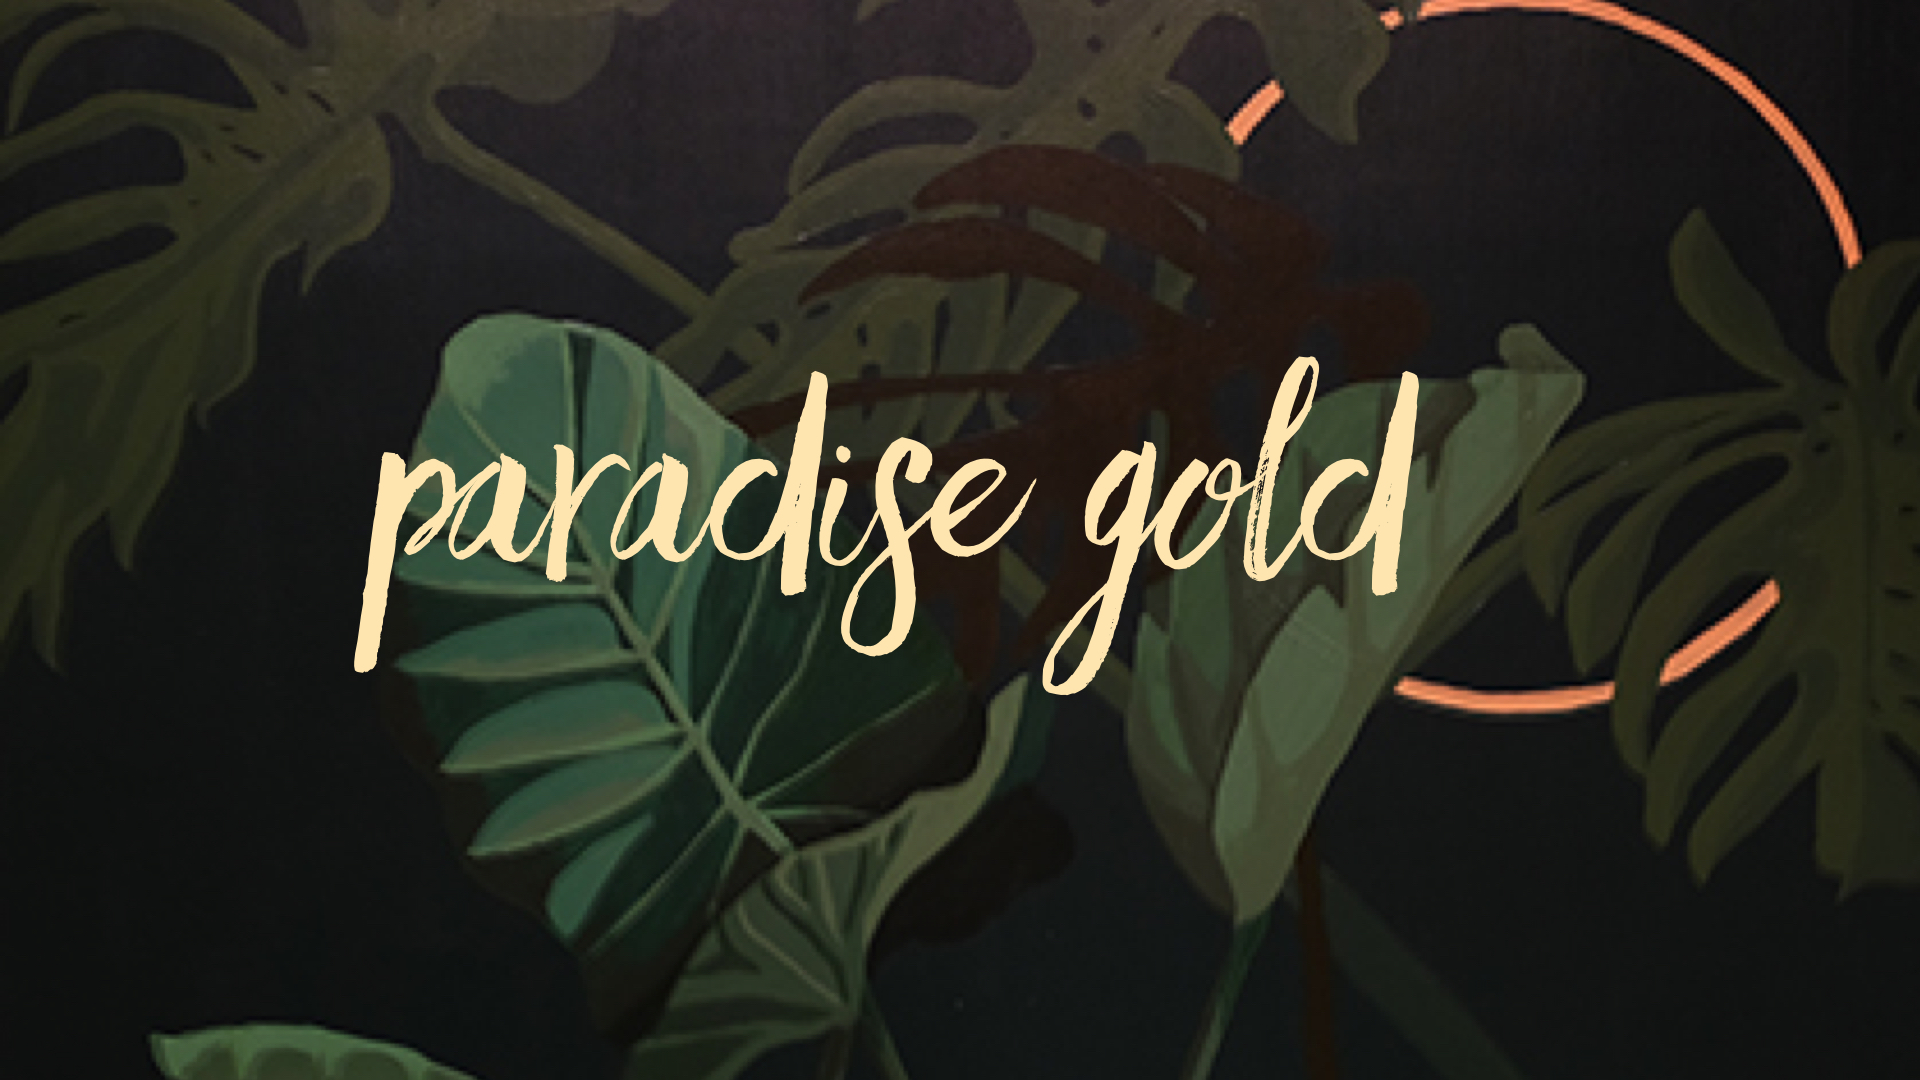 Paradise Gold – Sara Cannon Art opening at TrimTab Brewing June 2!